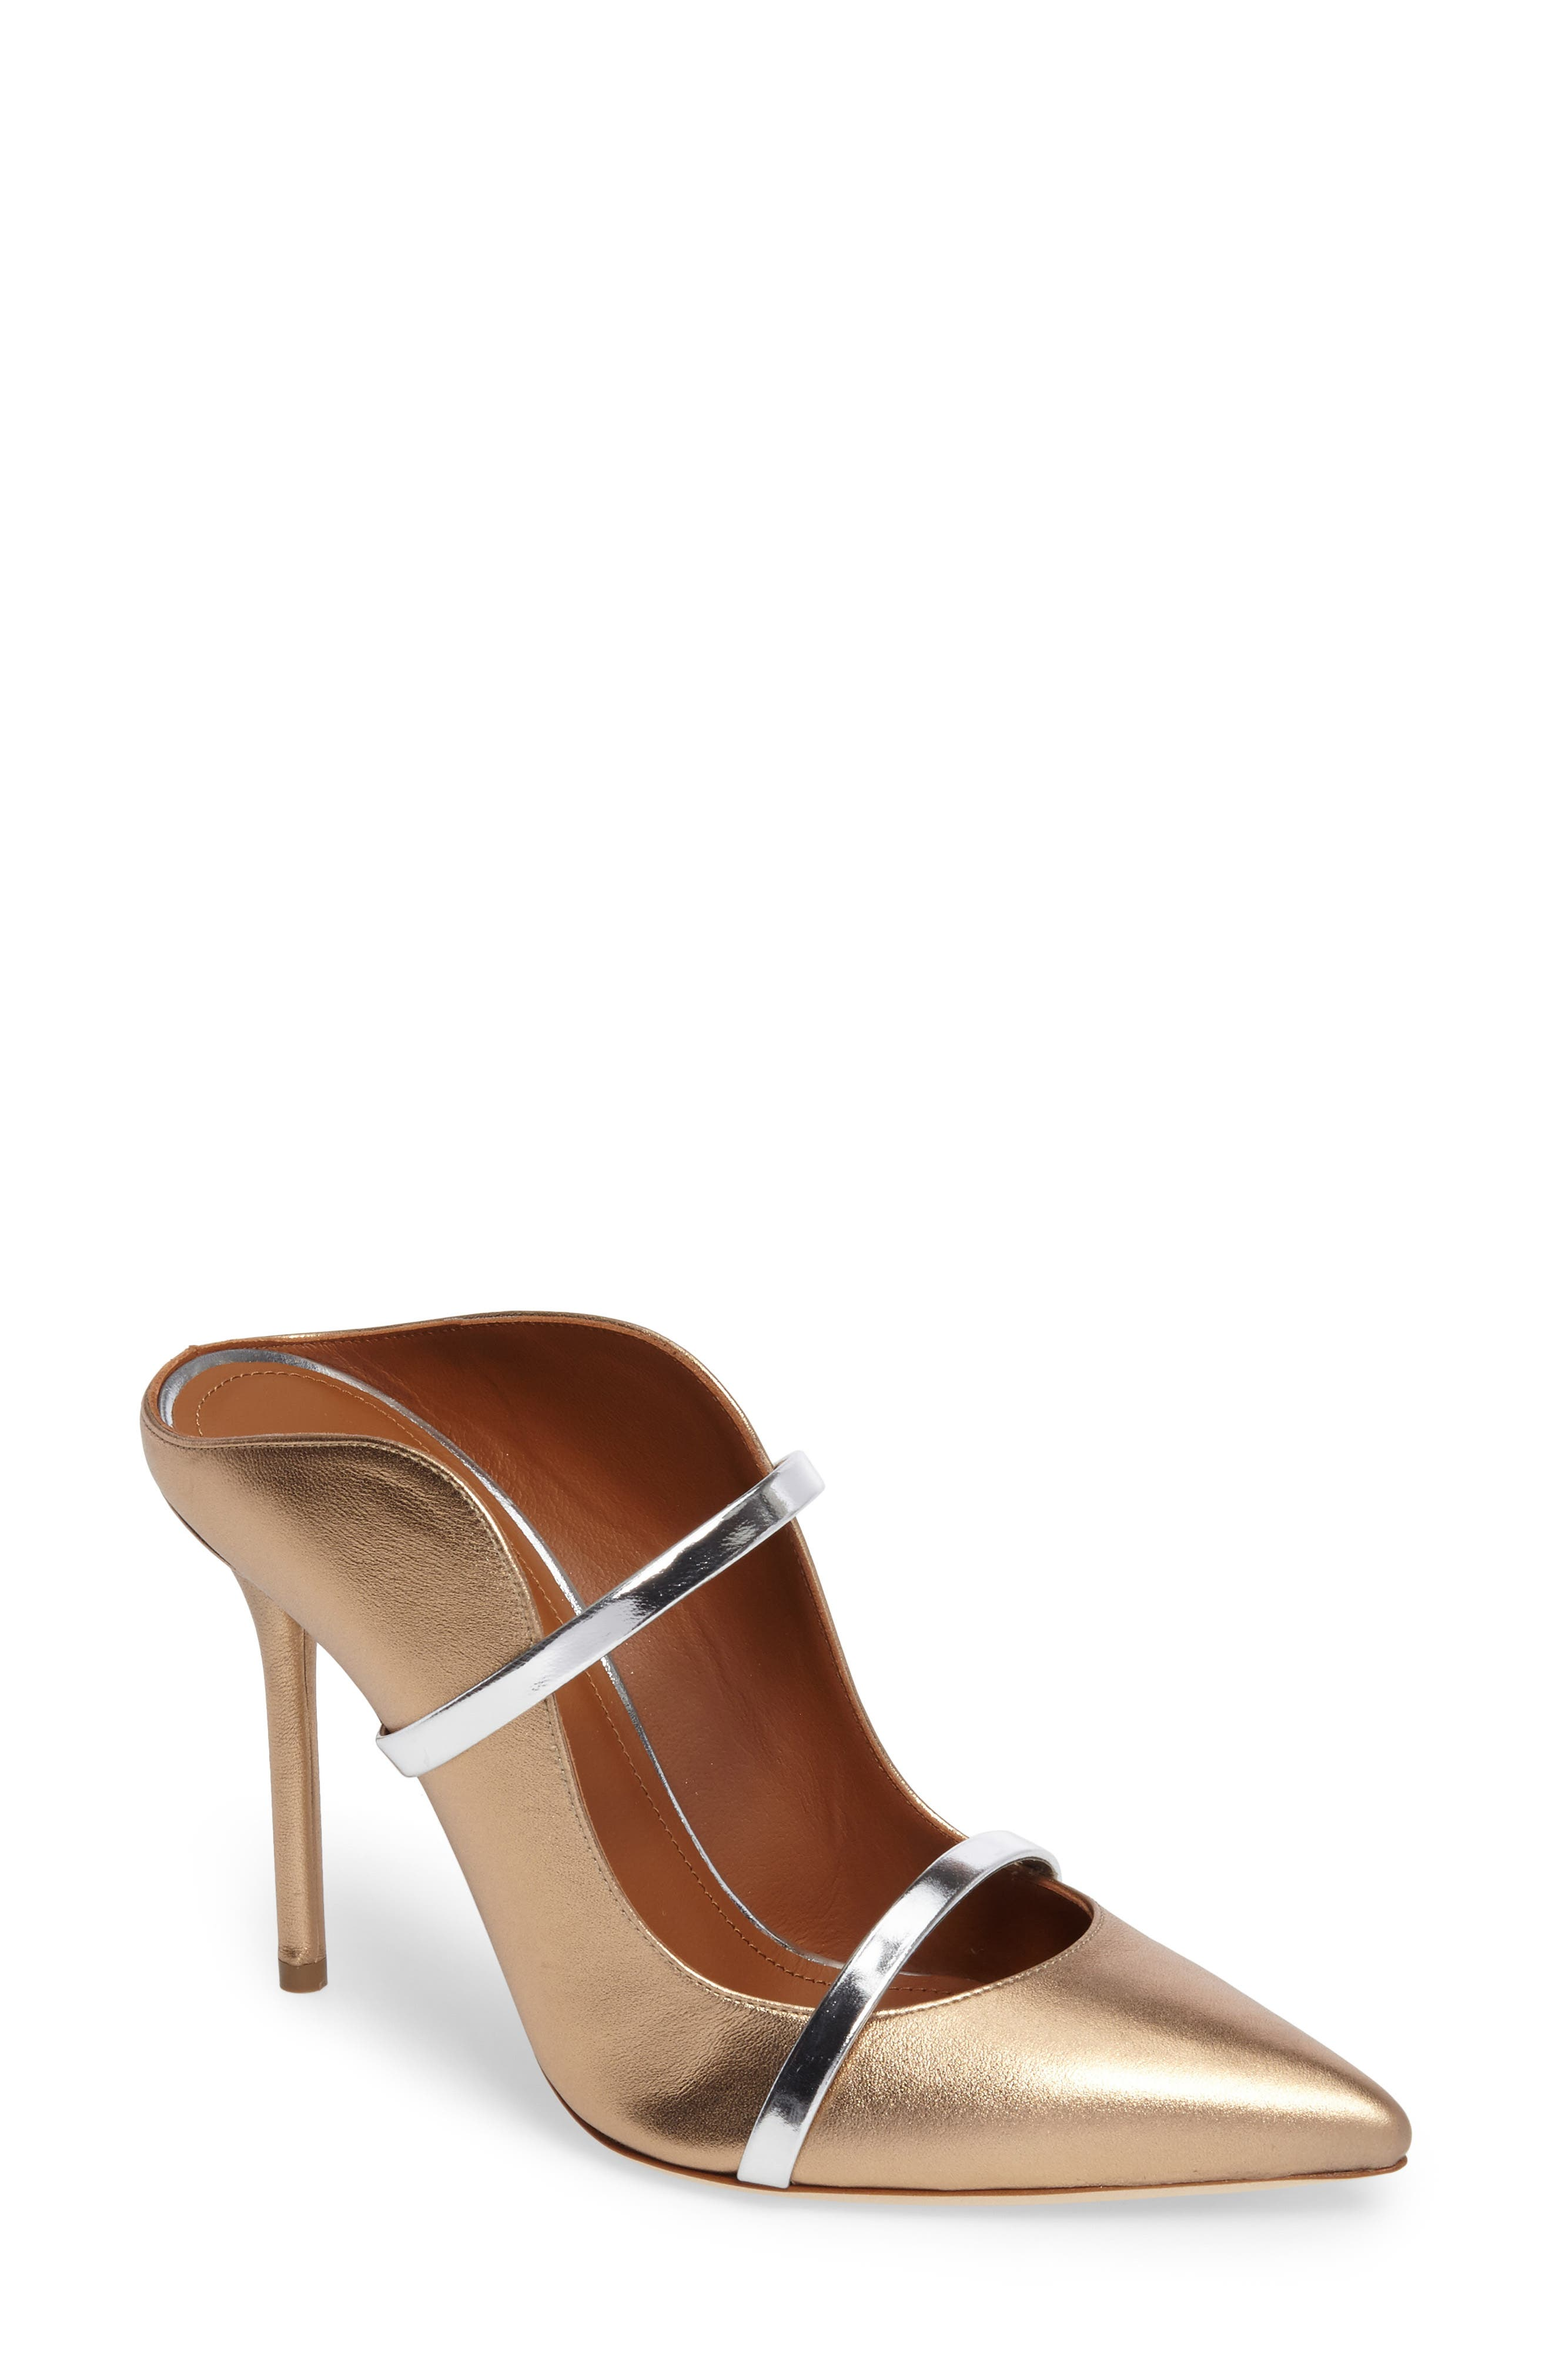 Malone Souliers Maureen Double Band Mule,                         Main,                         color, 710